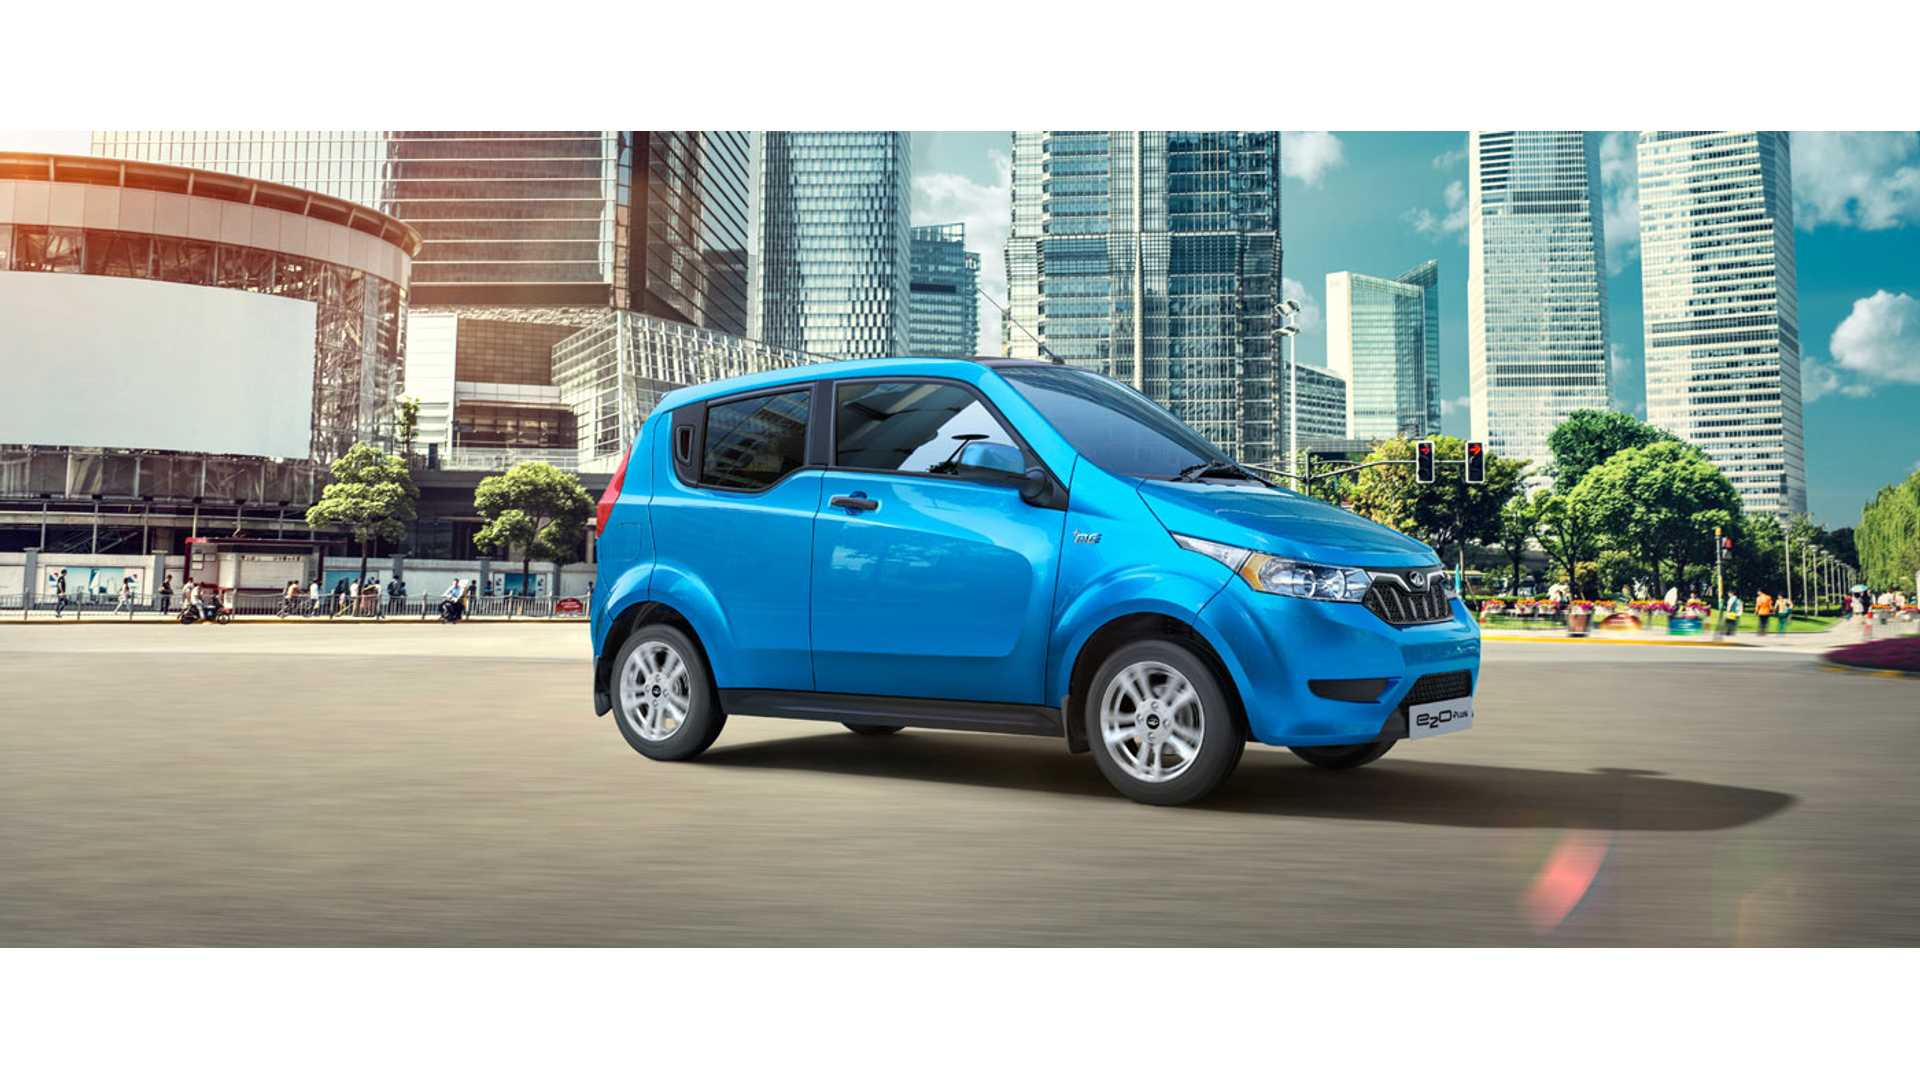 Mahindra To Offer 300km Long Range Electric Cars But Can They Them